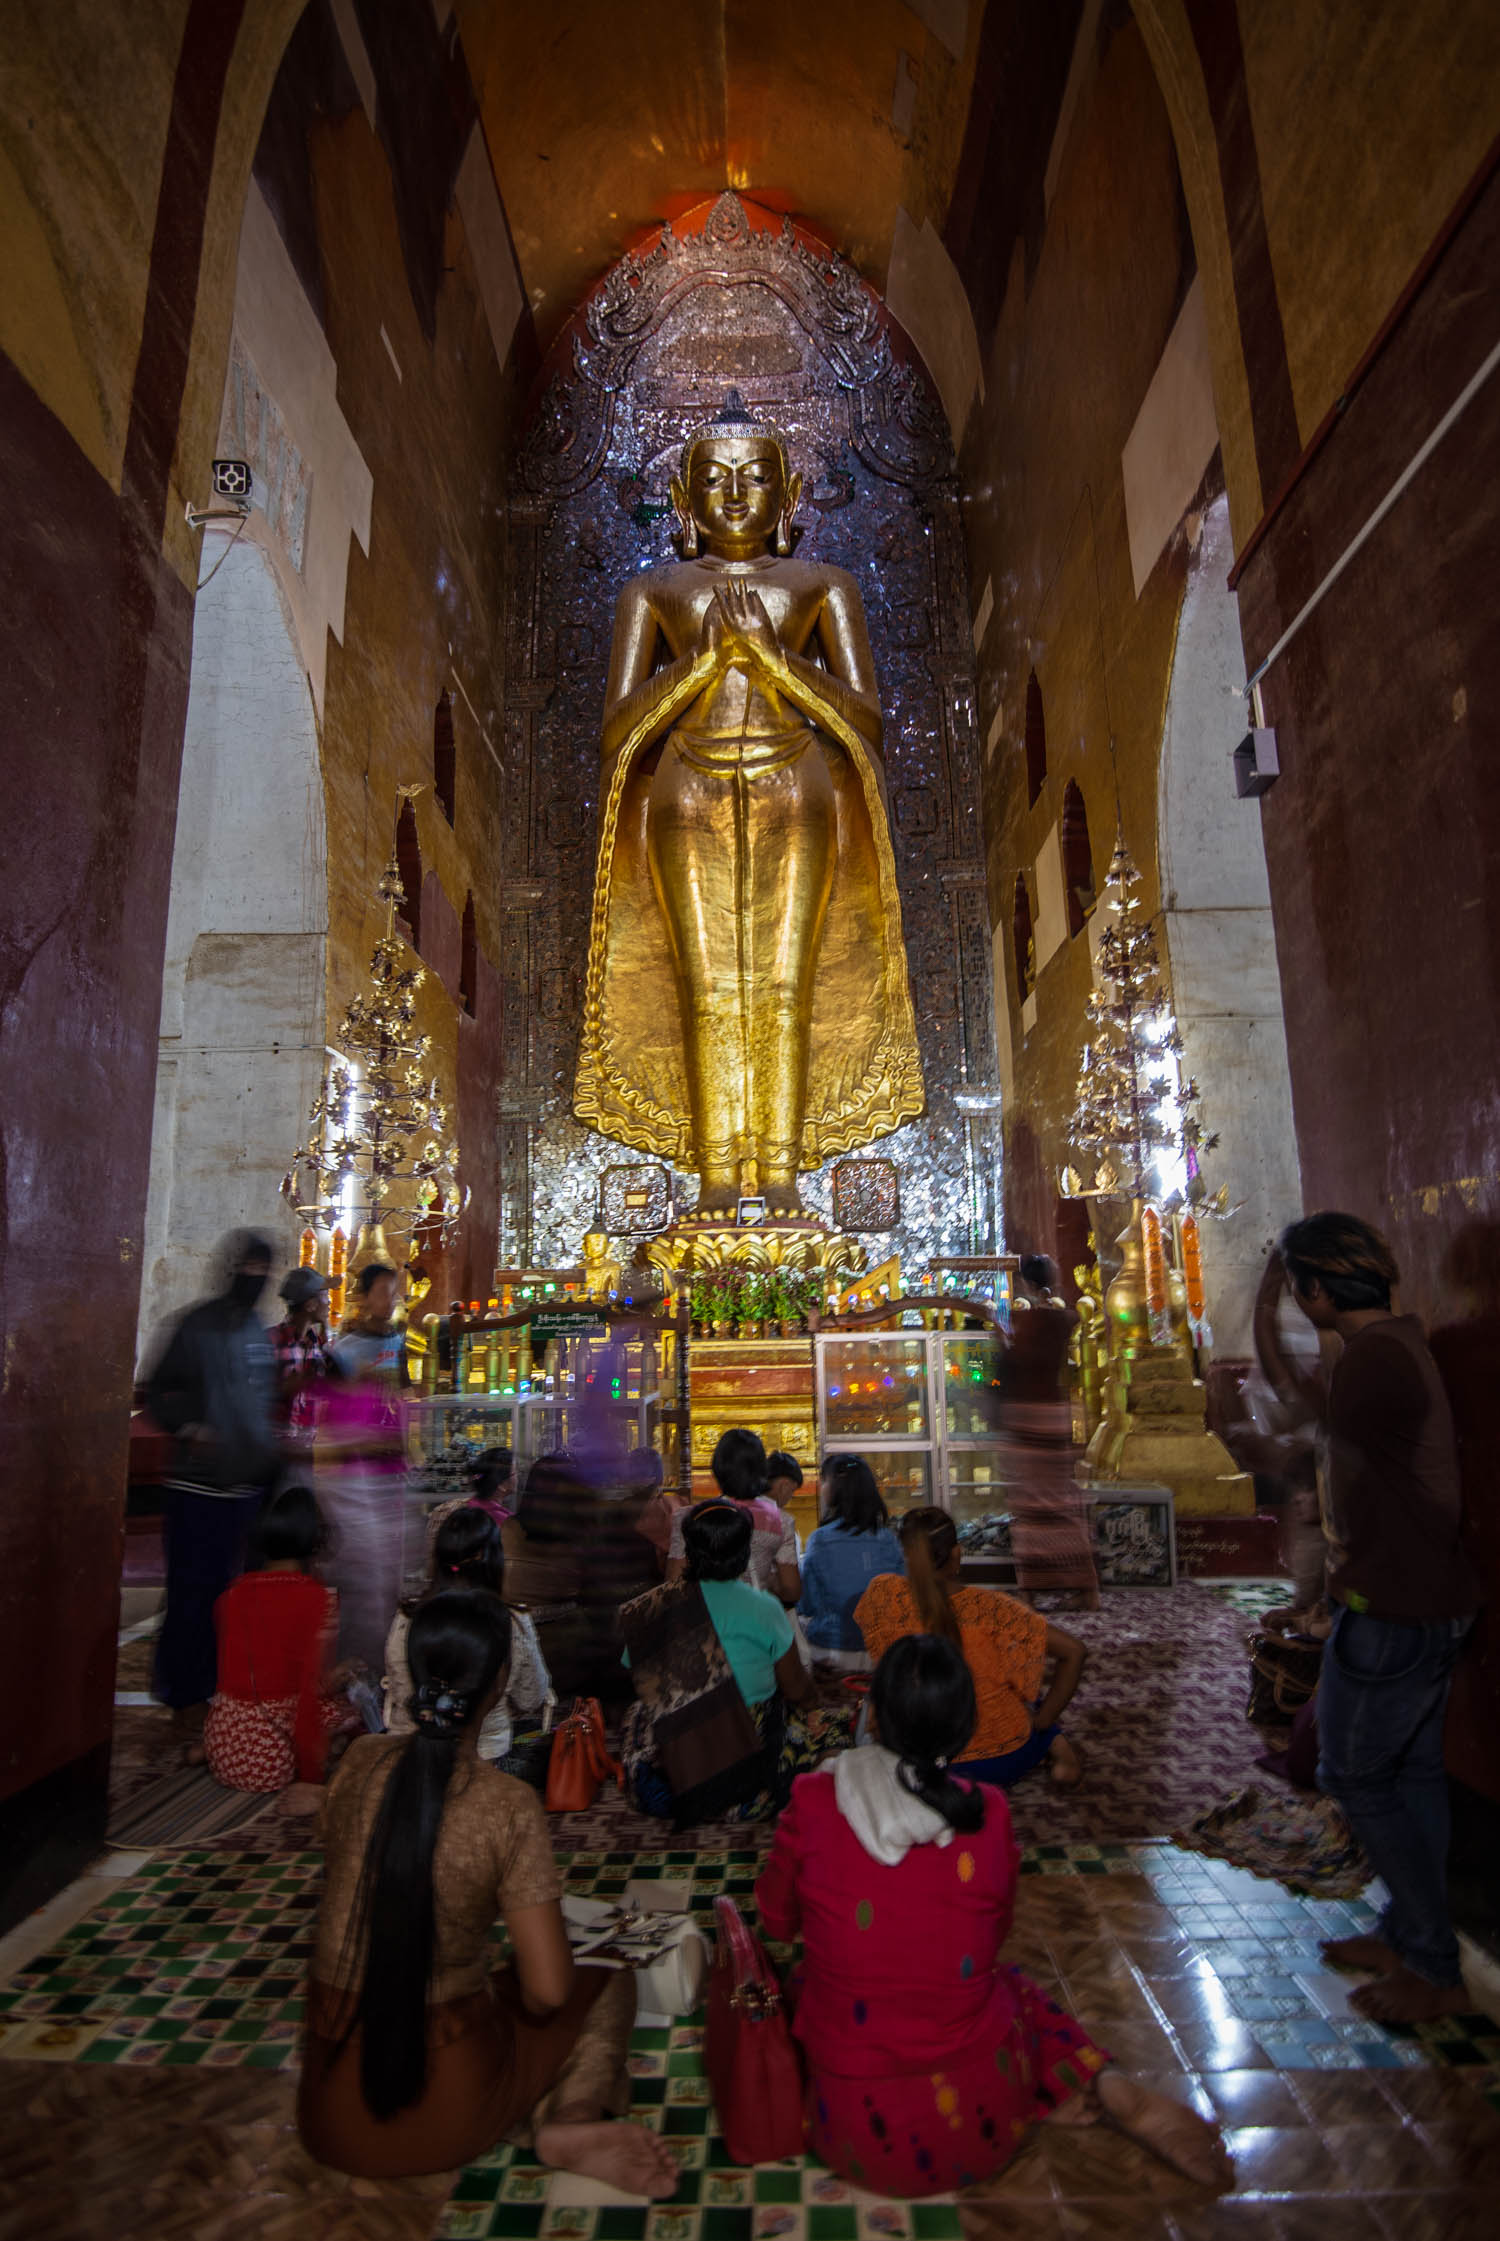 Devotees engage with the Buddha at the Ananda Phaya Temple in Bagan.